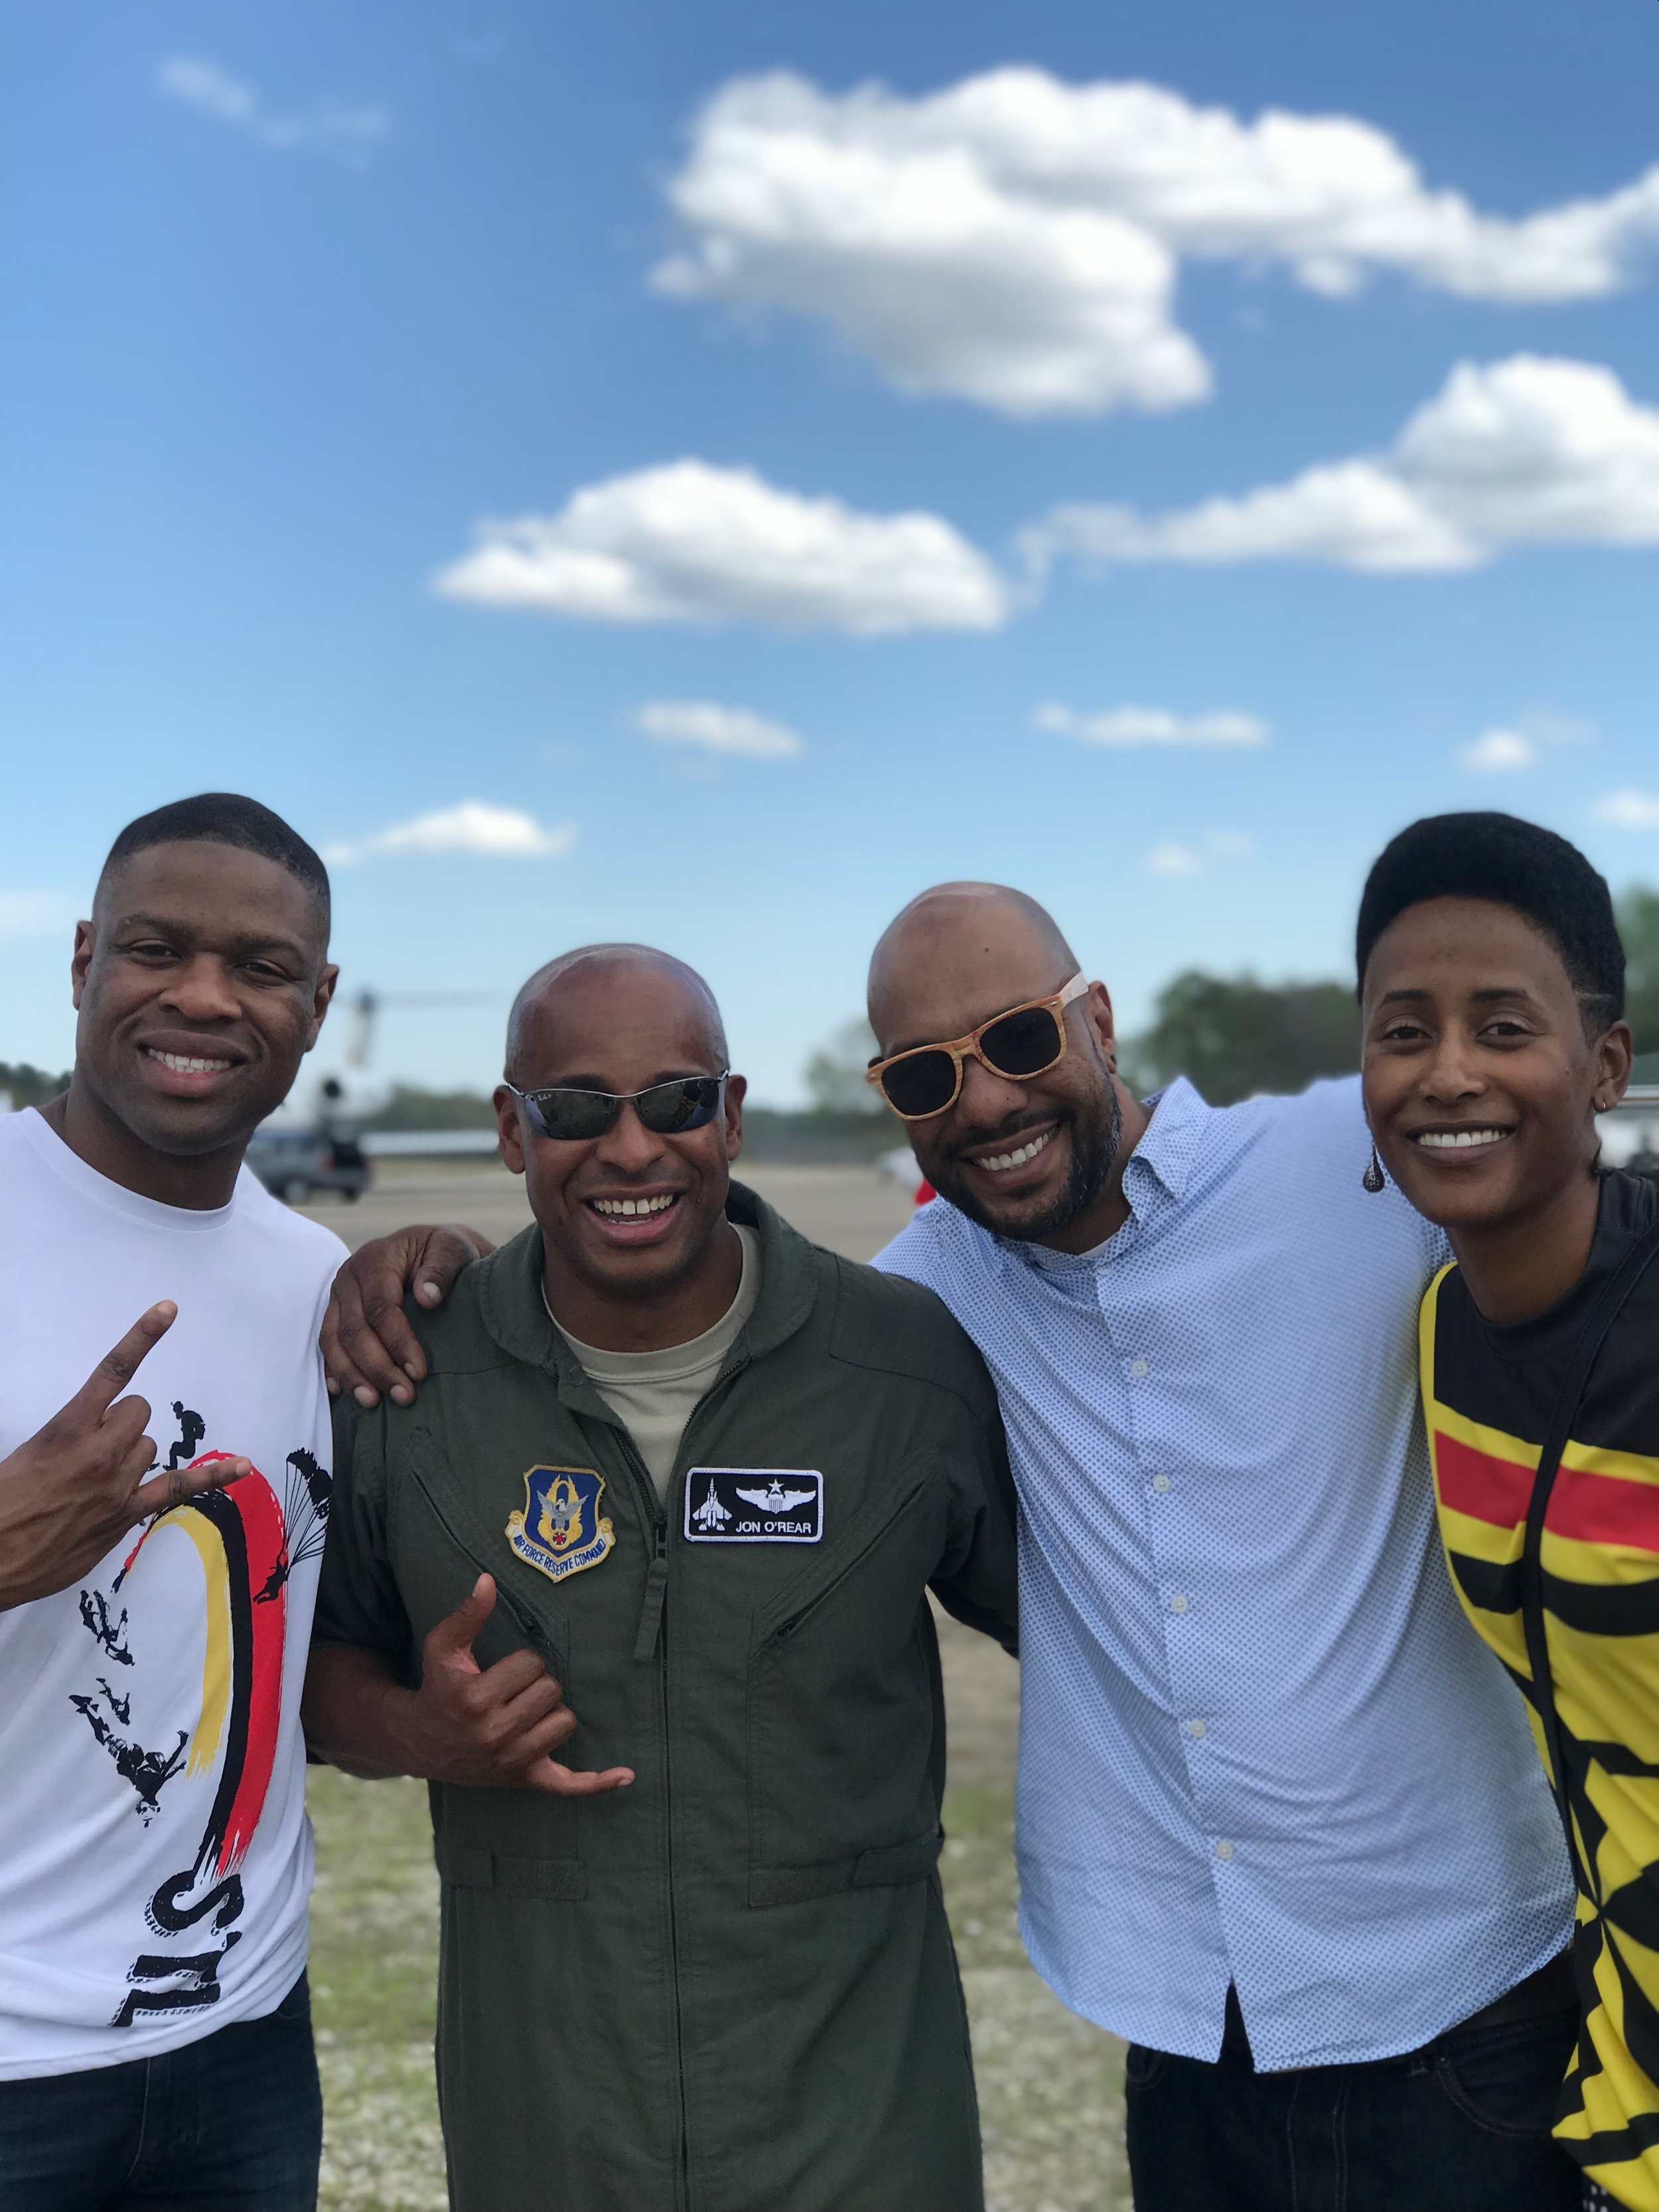 Emanuel Brice, Lieutenant Jonathan O'Rear, Waz Choudhry and Danielle Williams pose for a photo at Moton Field in Tuskegee, AL.